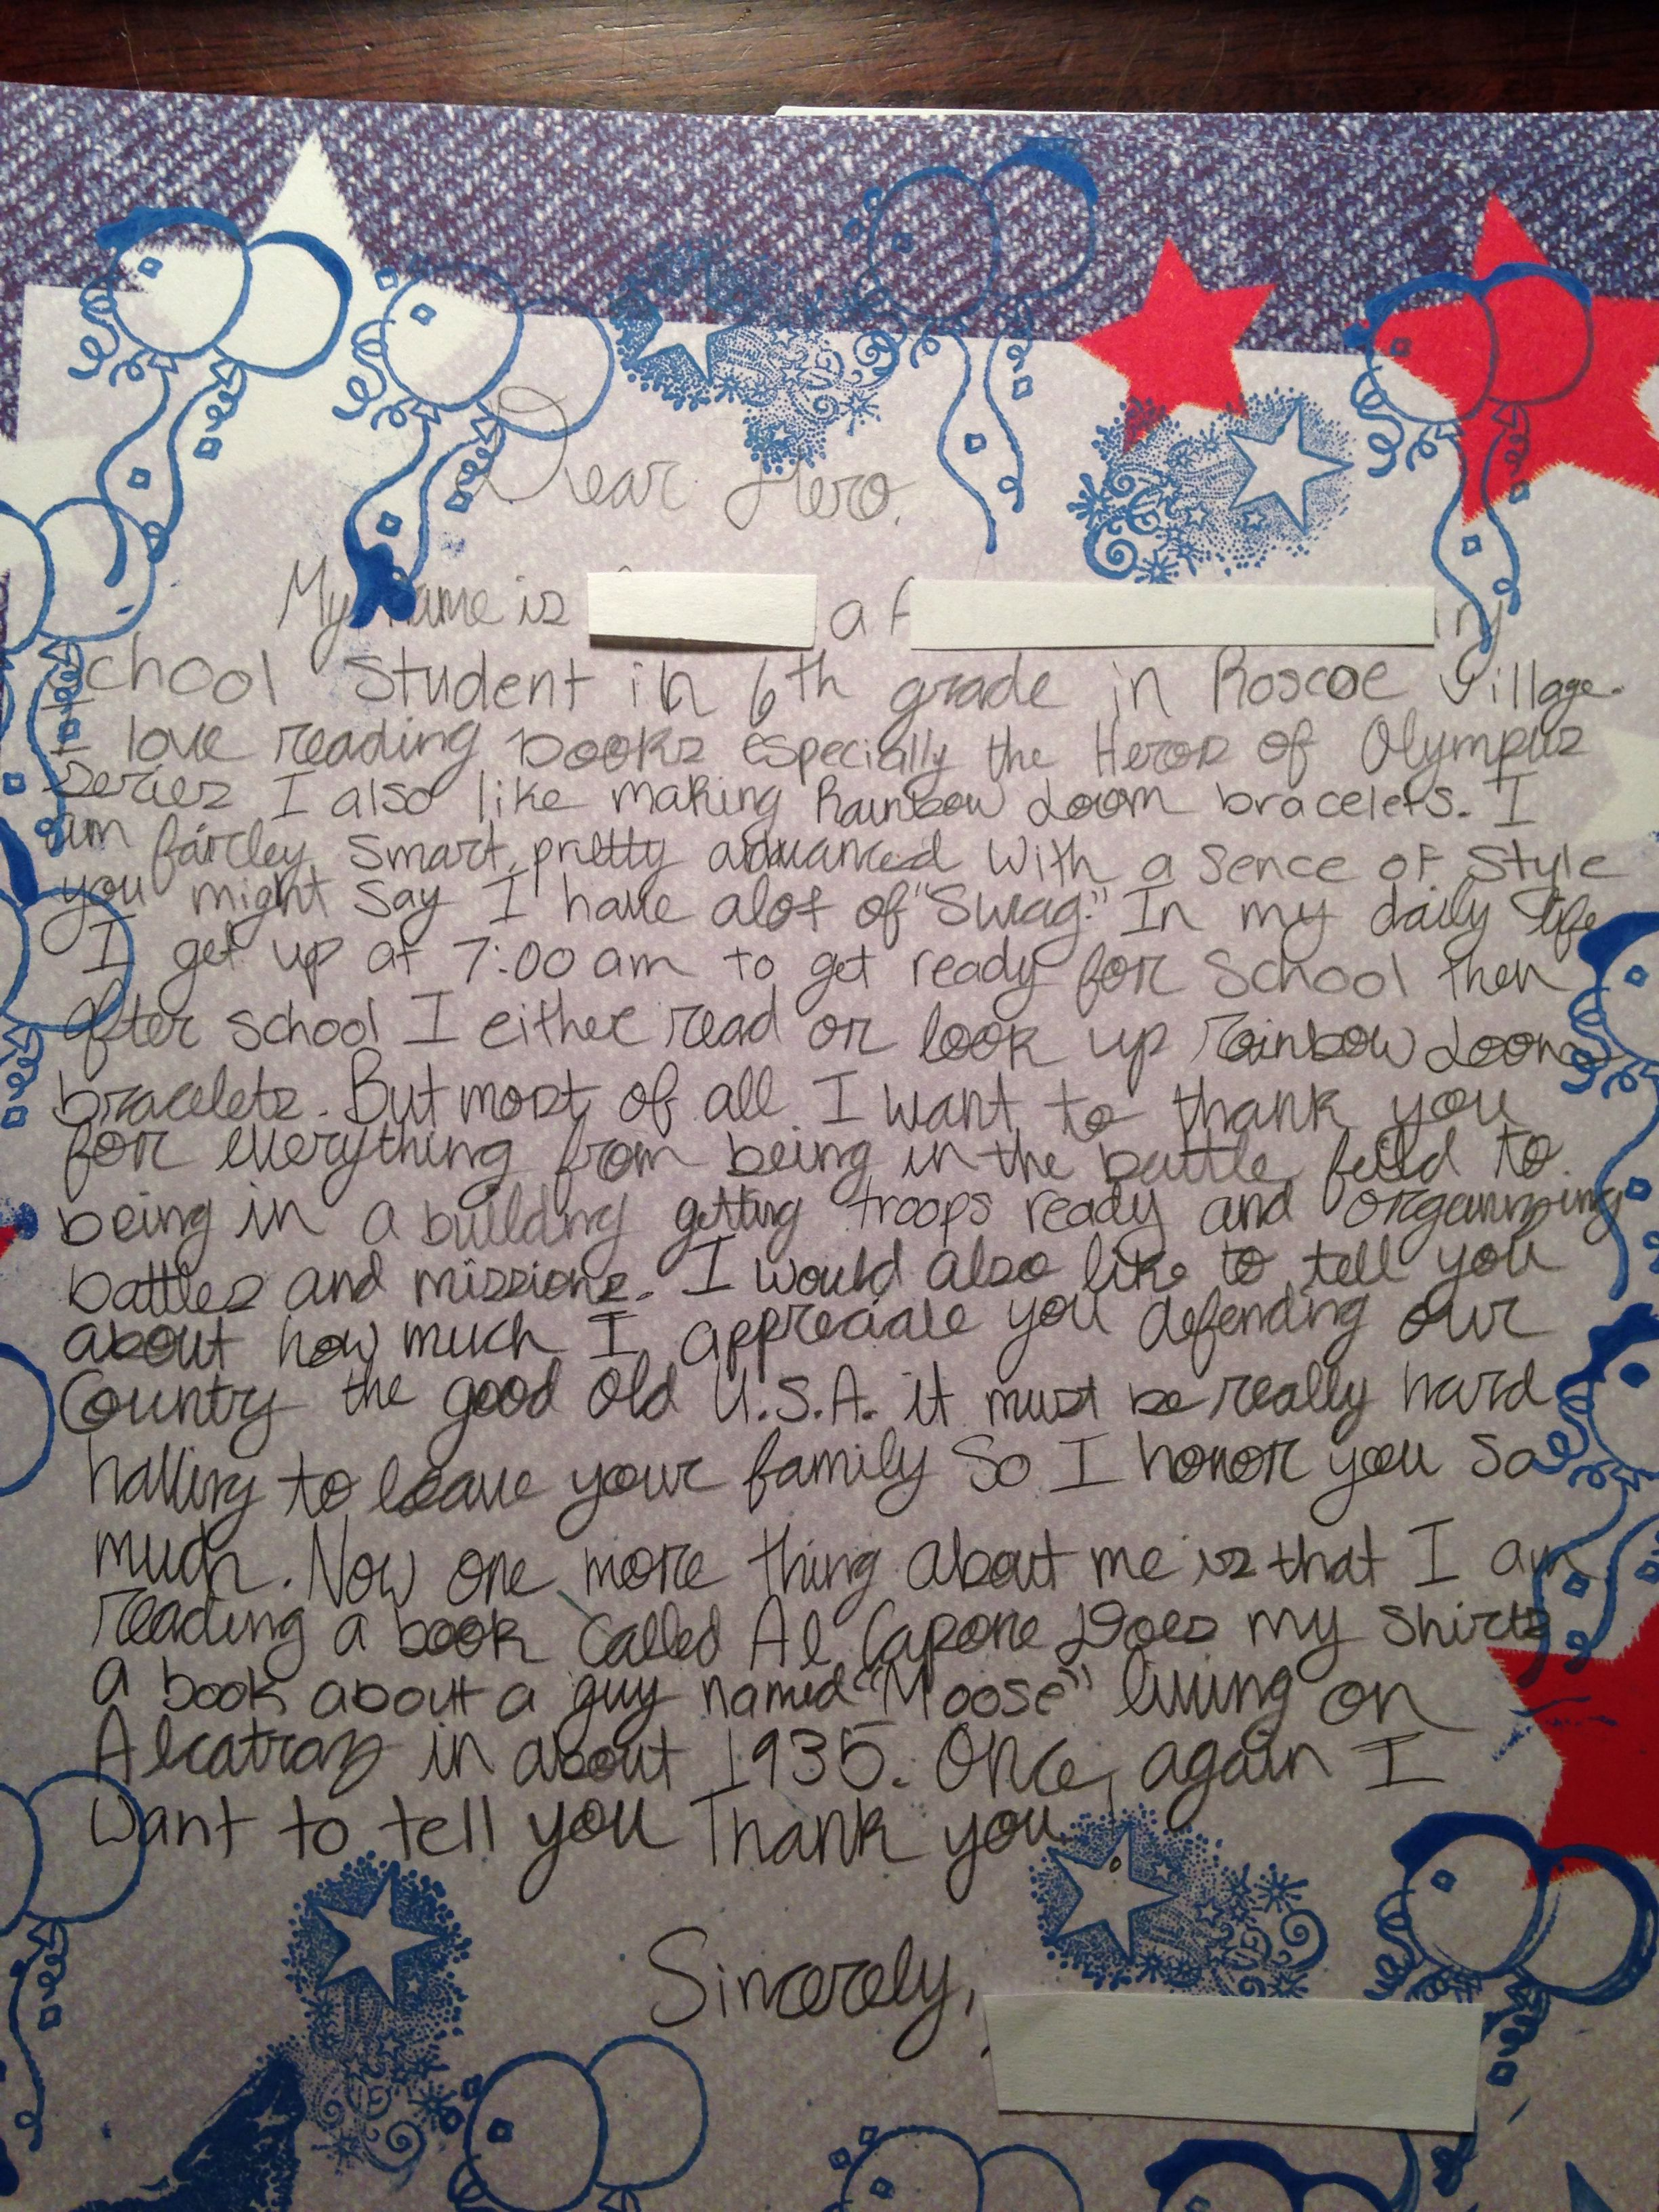 6th Grade Student Letter Of Support To Deployed Troops Letters For Kids Operation Gratitude Troops